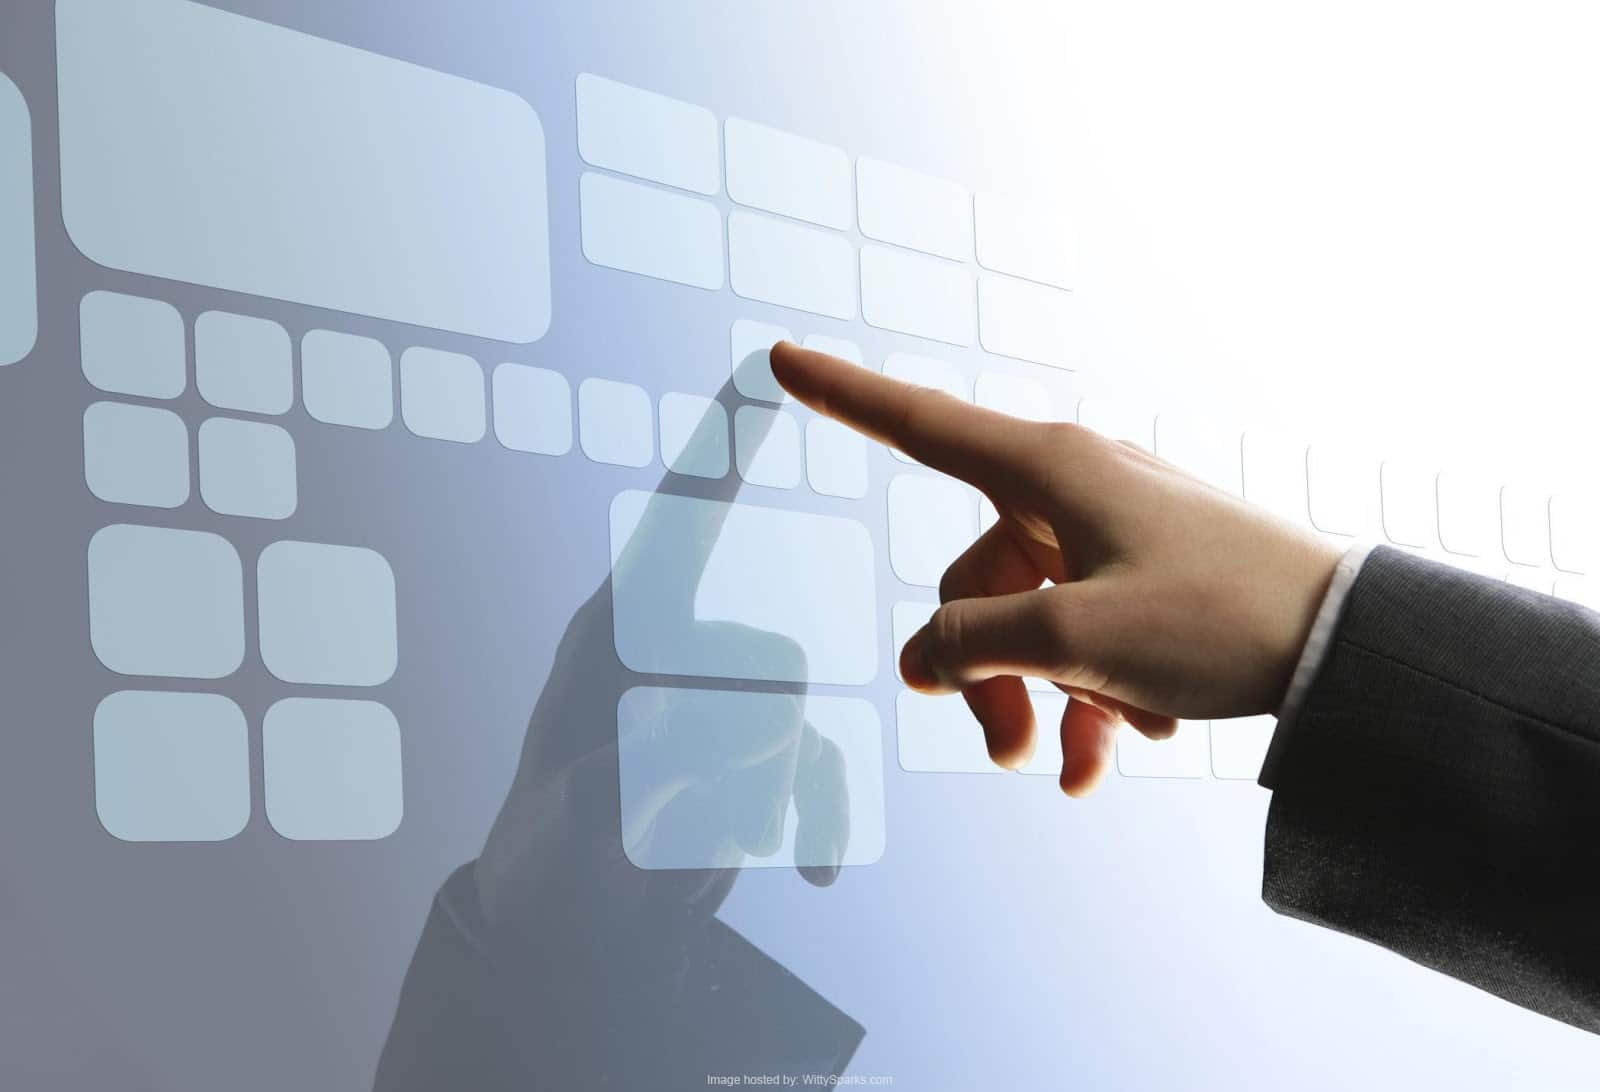 Touch Screen - Ease of use